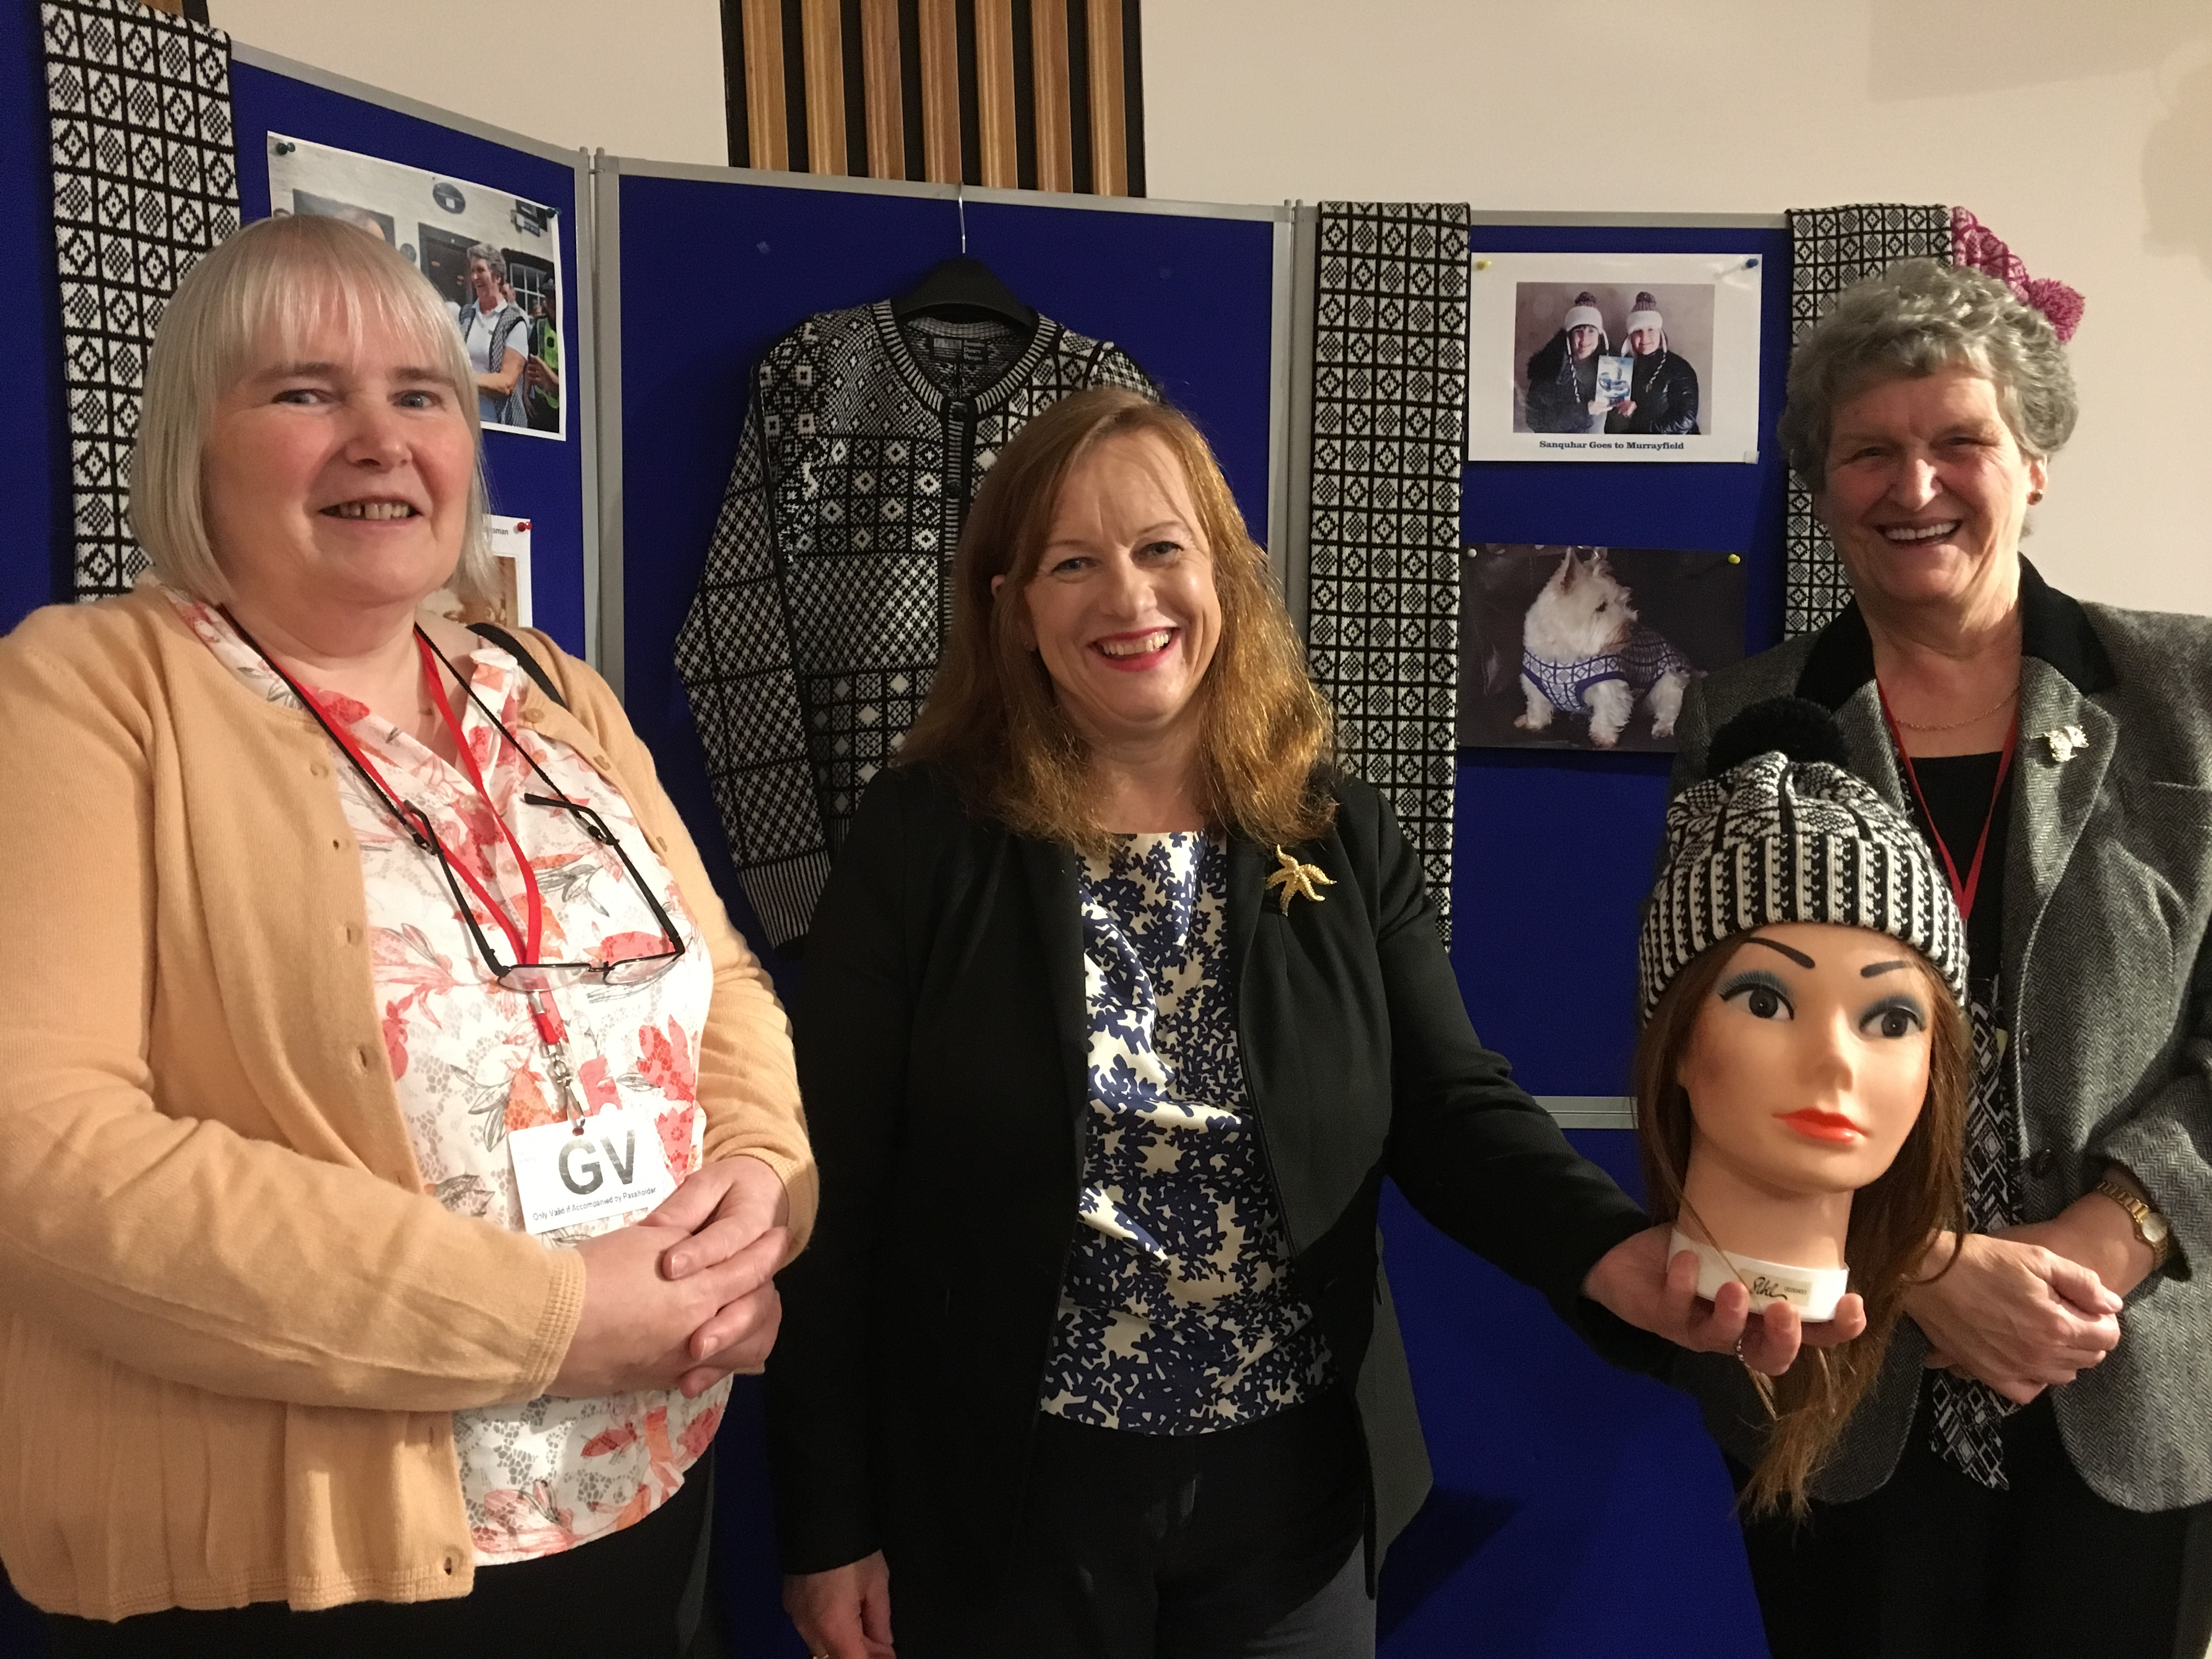 Elma_Clark__Joan_McAlpine_MSP_and_Kate_Sloan.JPG